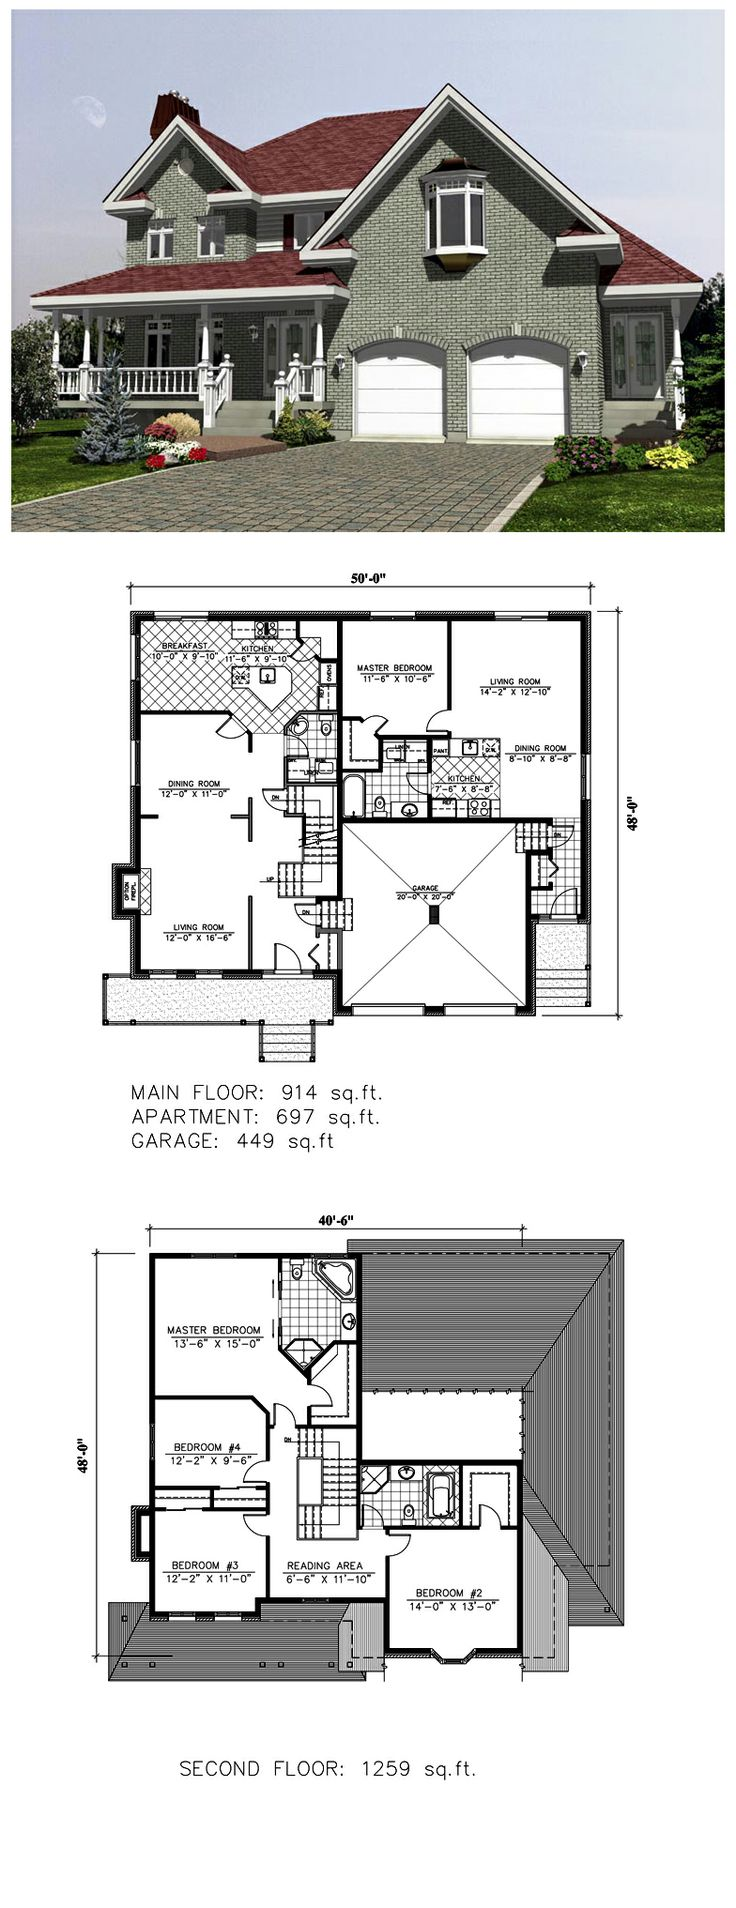 16 best house plans with in law suites images on pinterest cool cool house plan id chp 53152 total living area 2870 sq ft